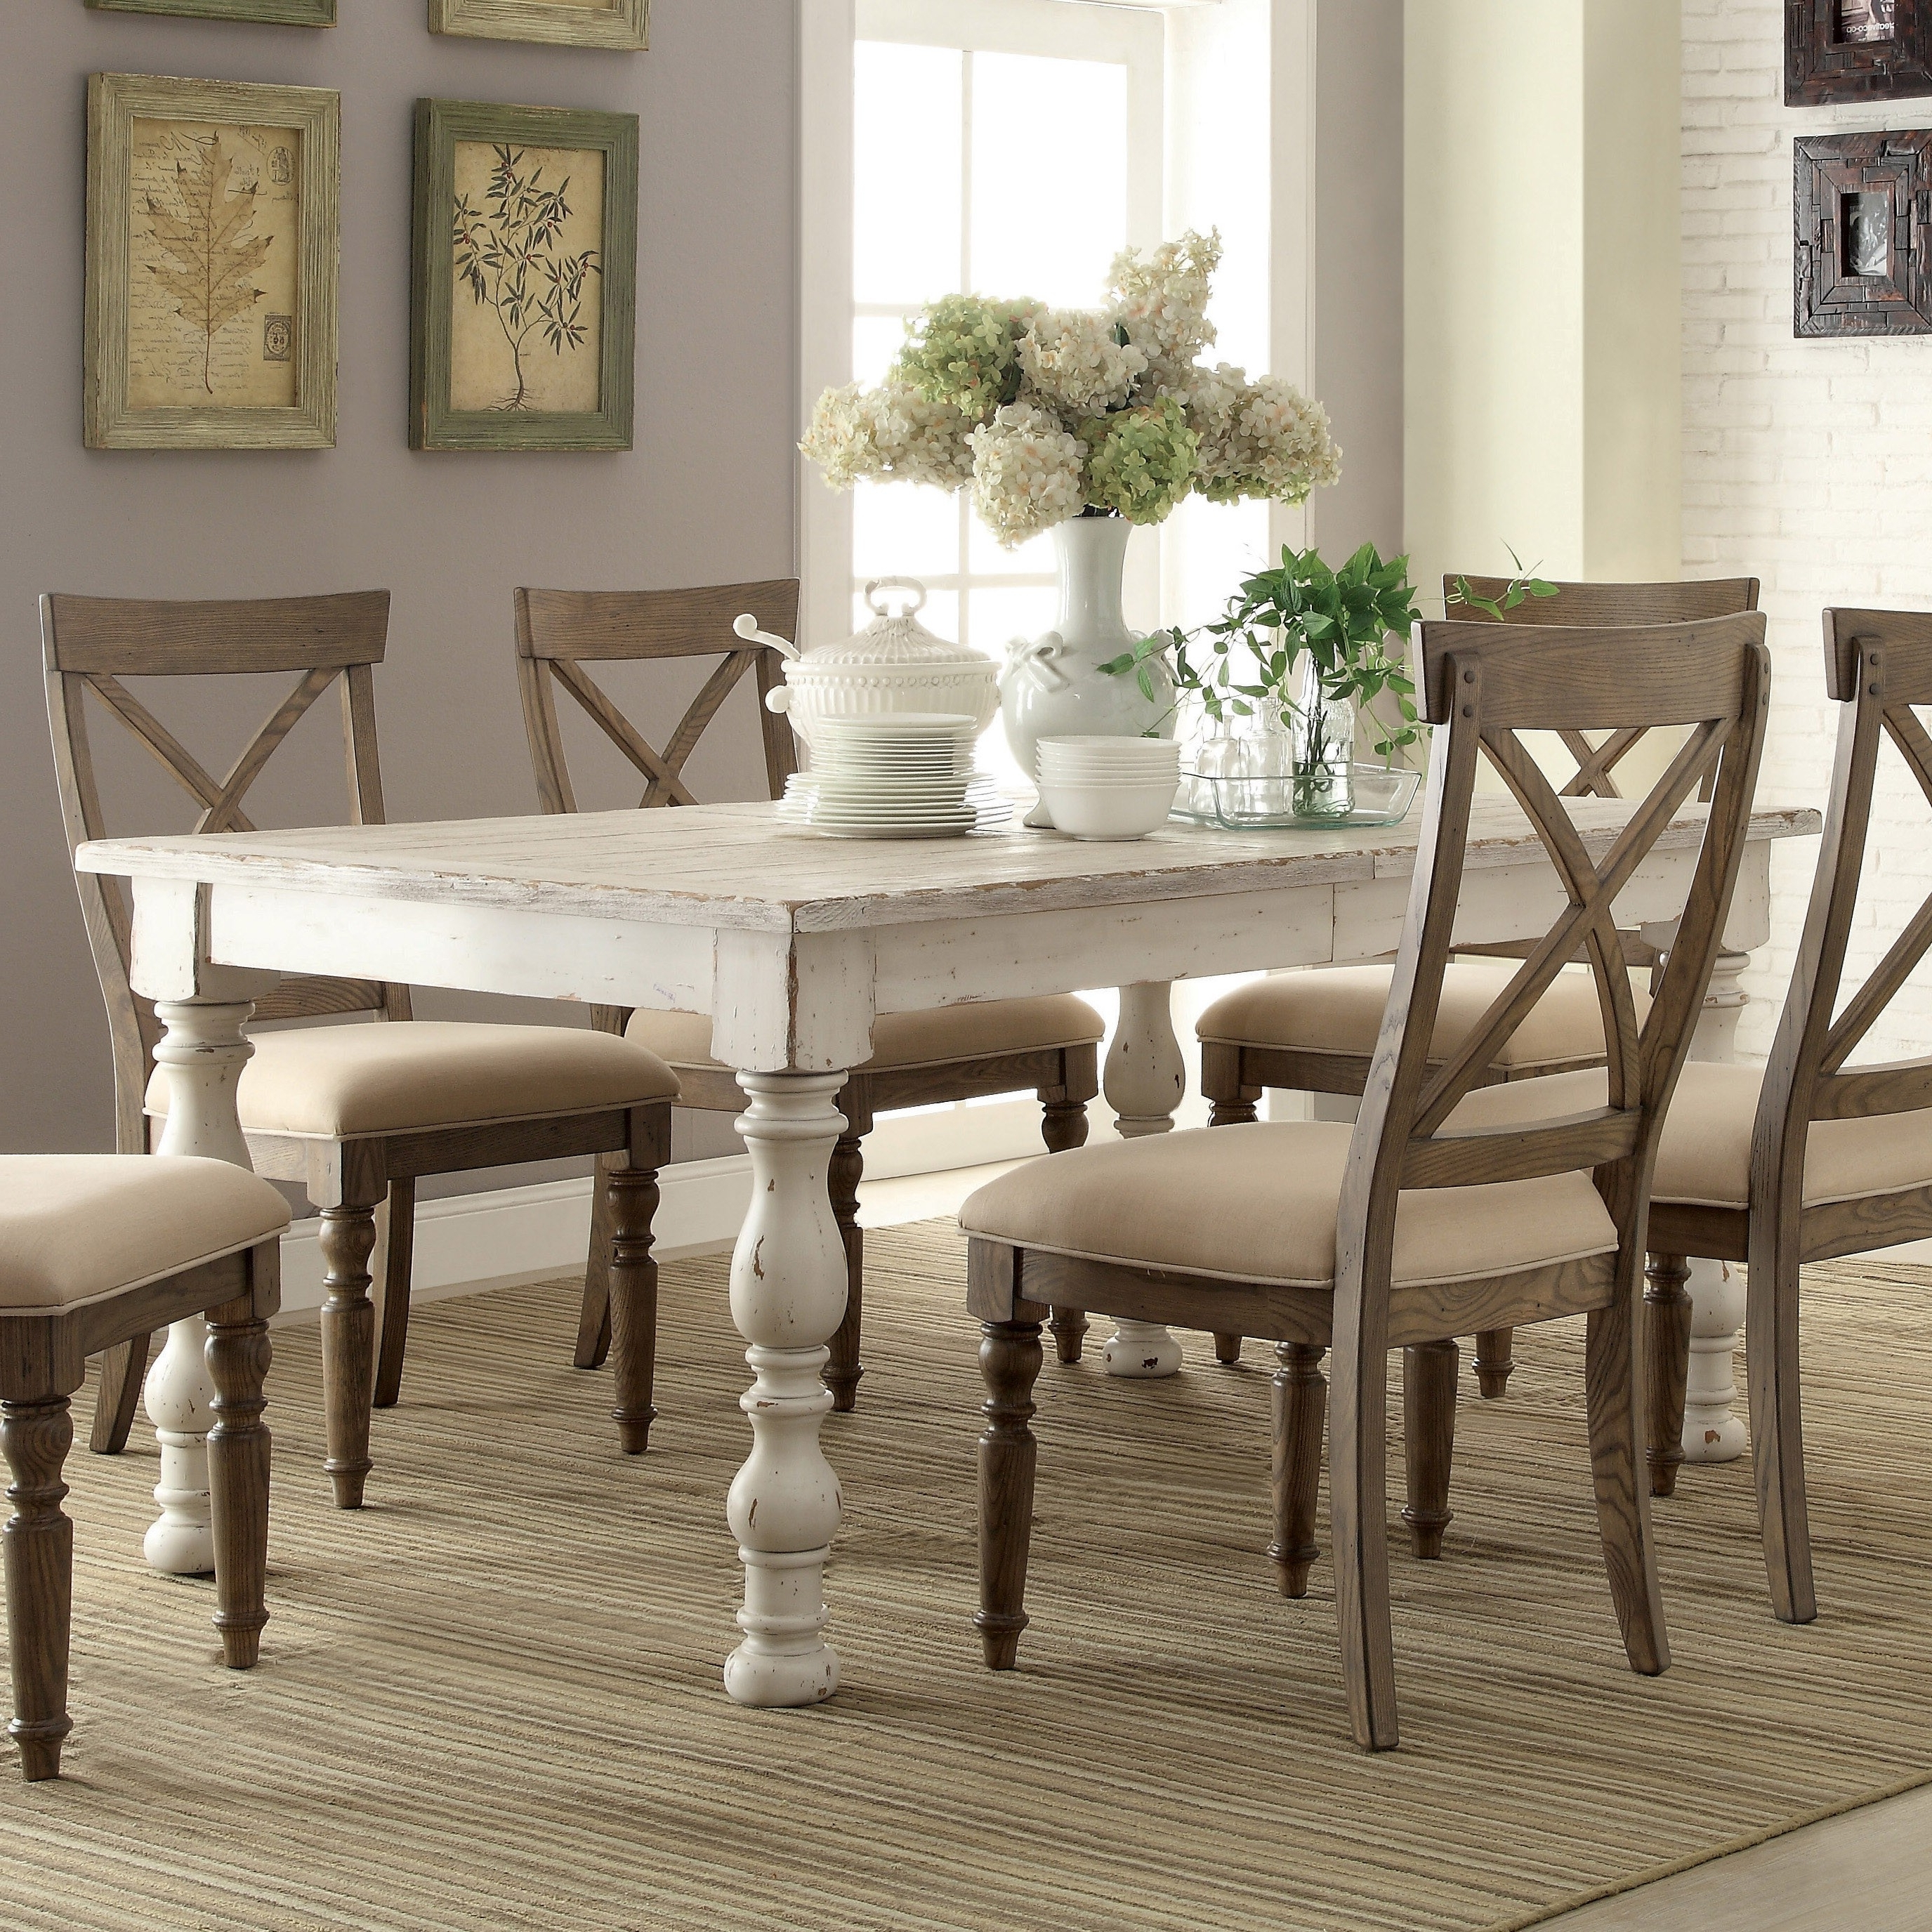 Dining Tables Grey Chairs throughout Best and Newest Aberdeen Wood Rectangular Dining Table In Weathered Worn White